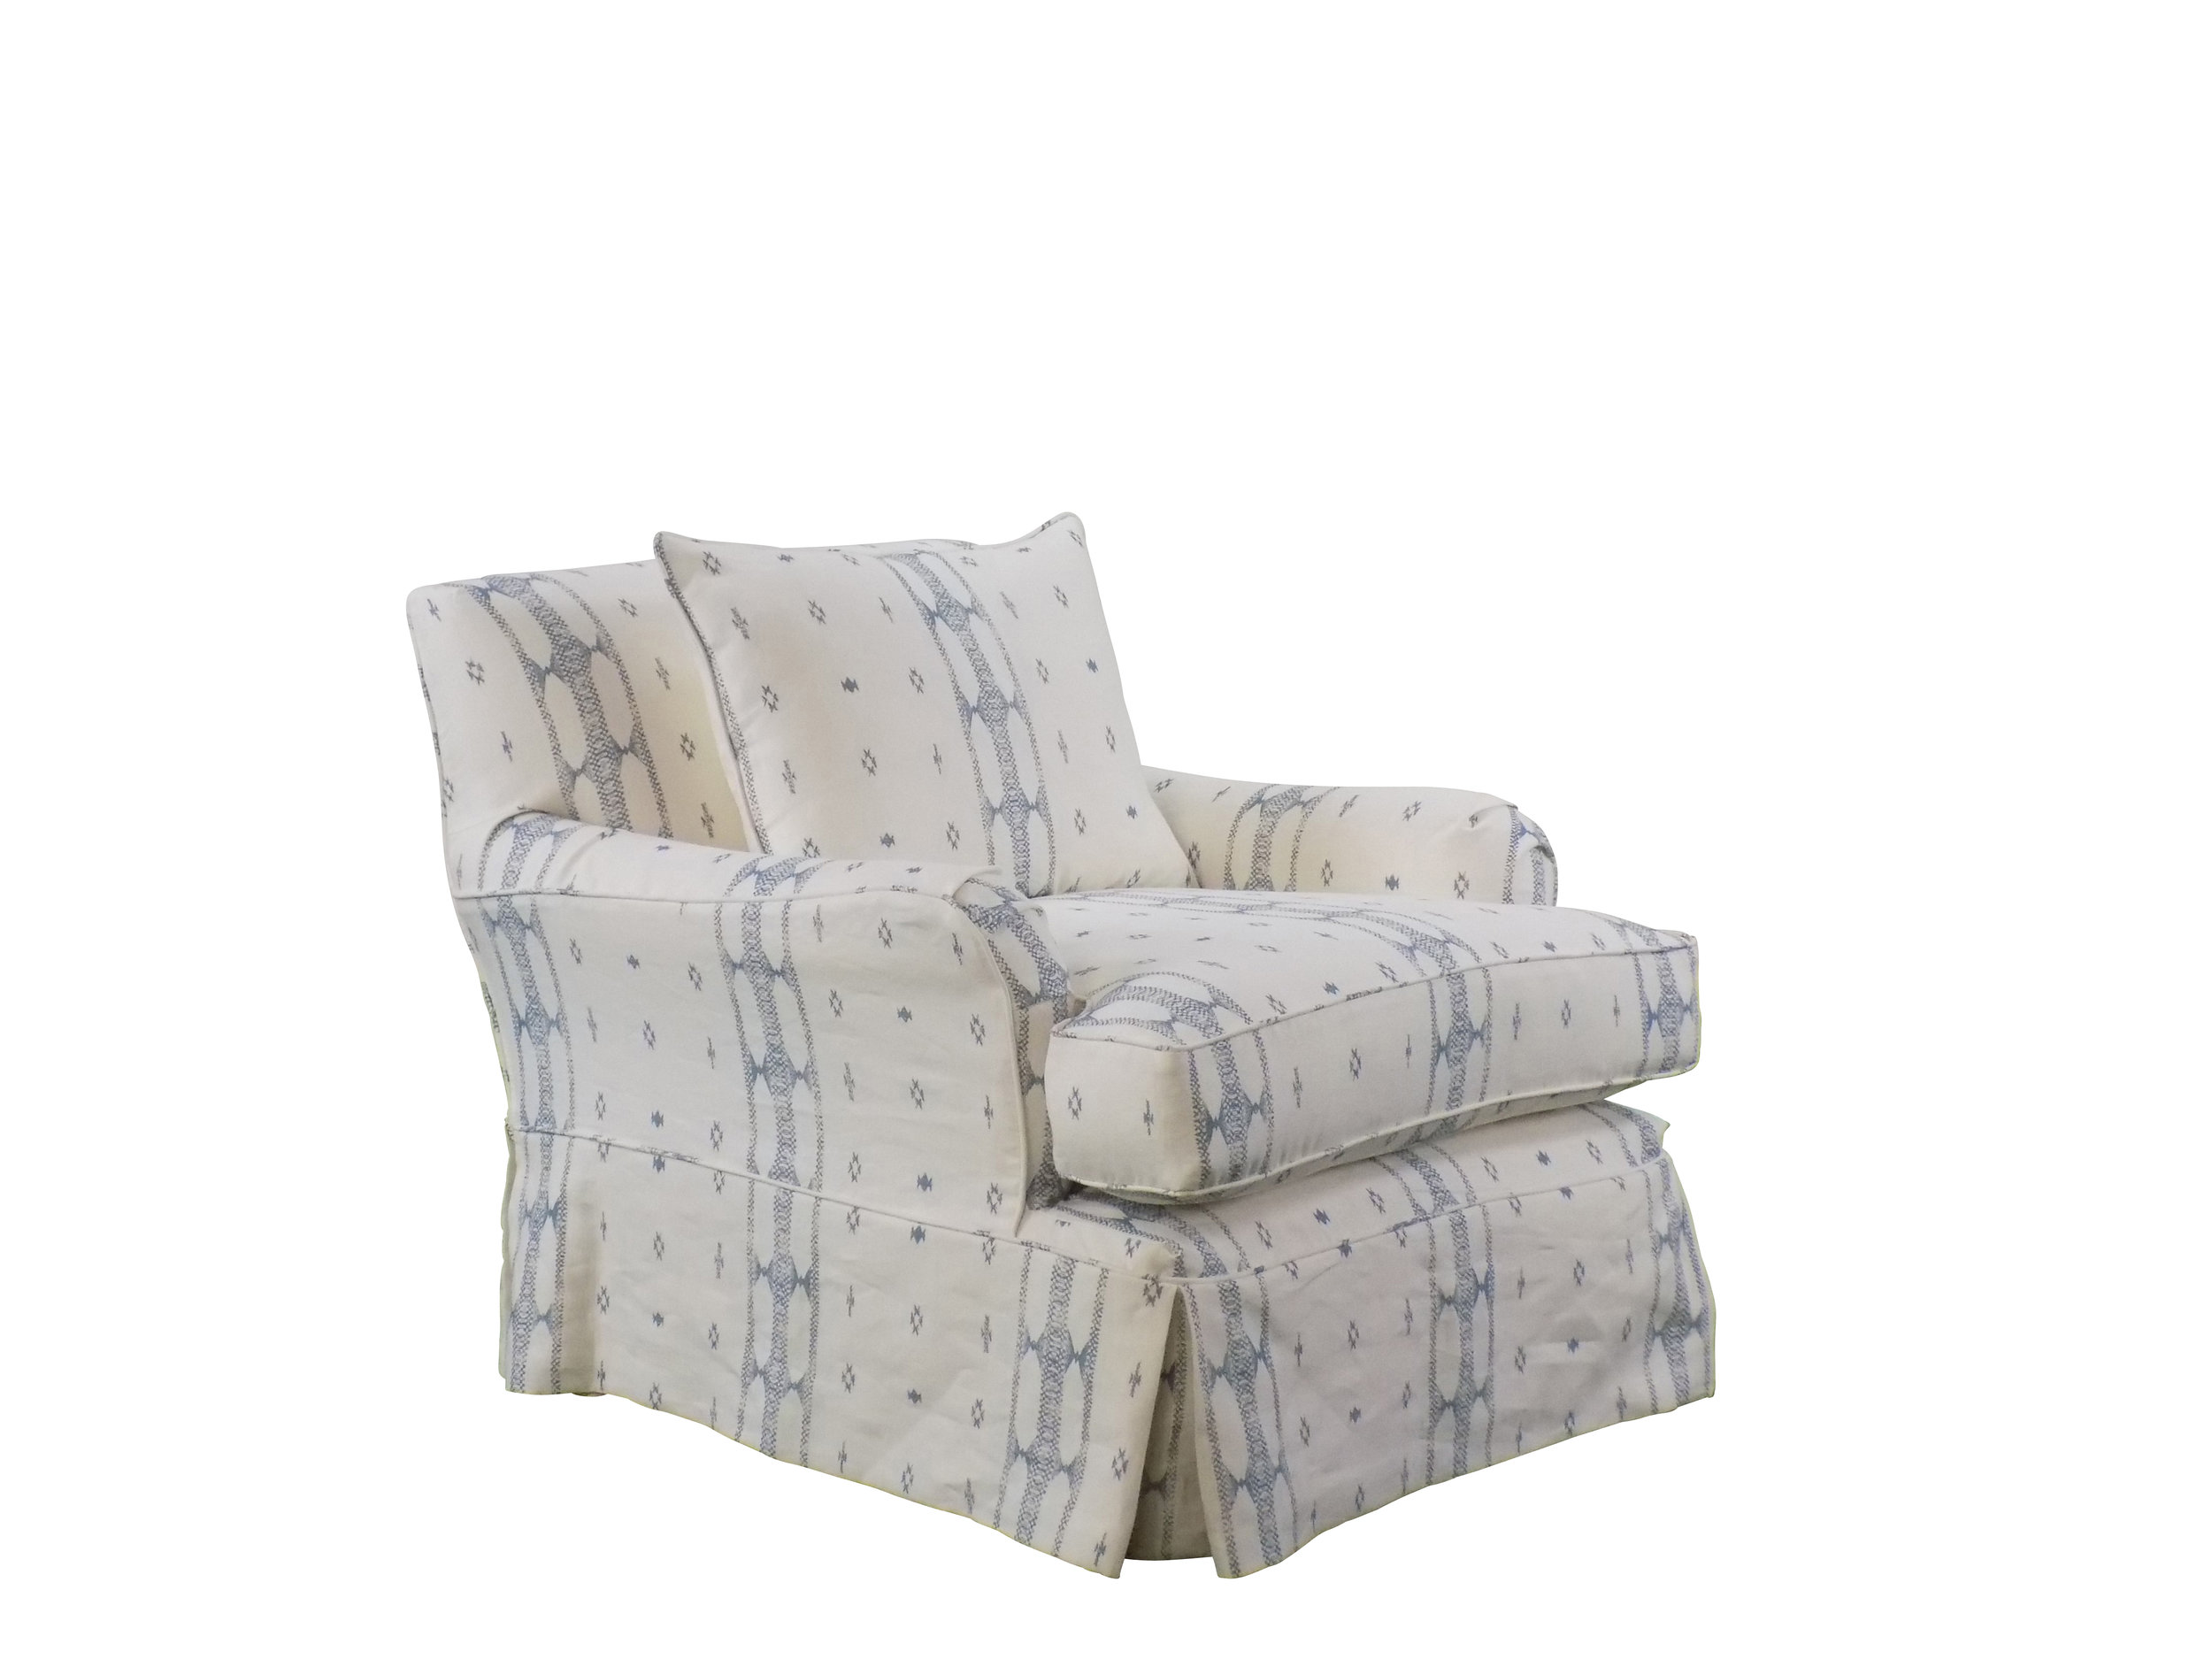 Brighton swivel chair with custom blue and white fabric